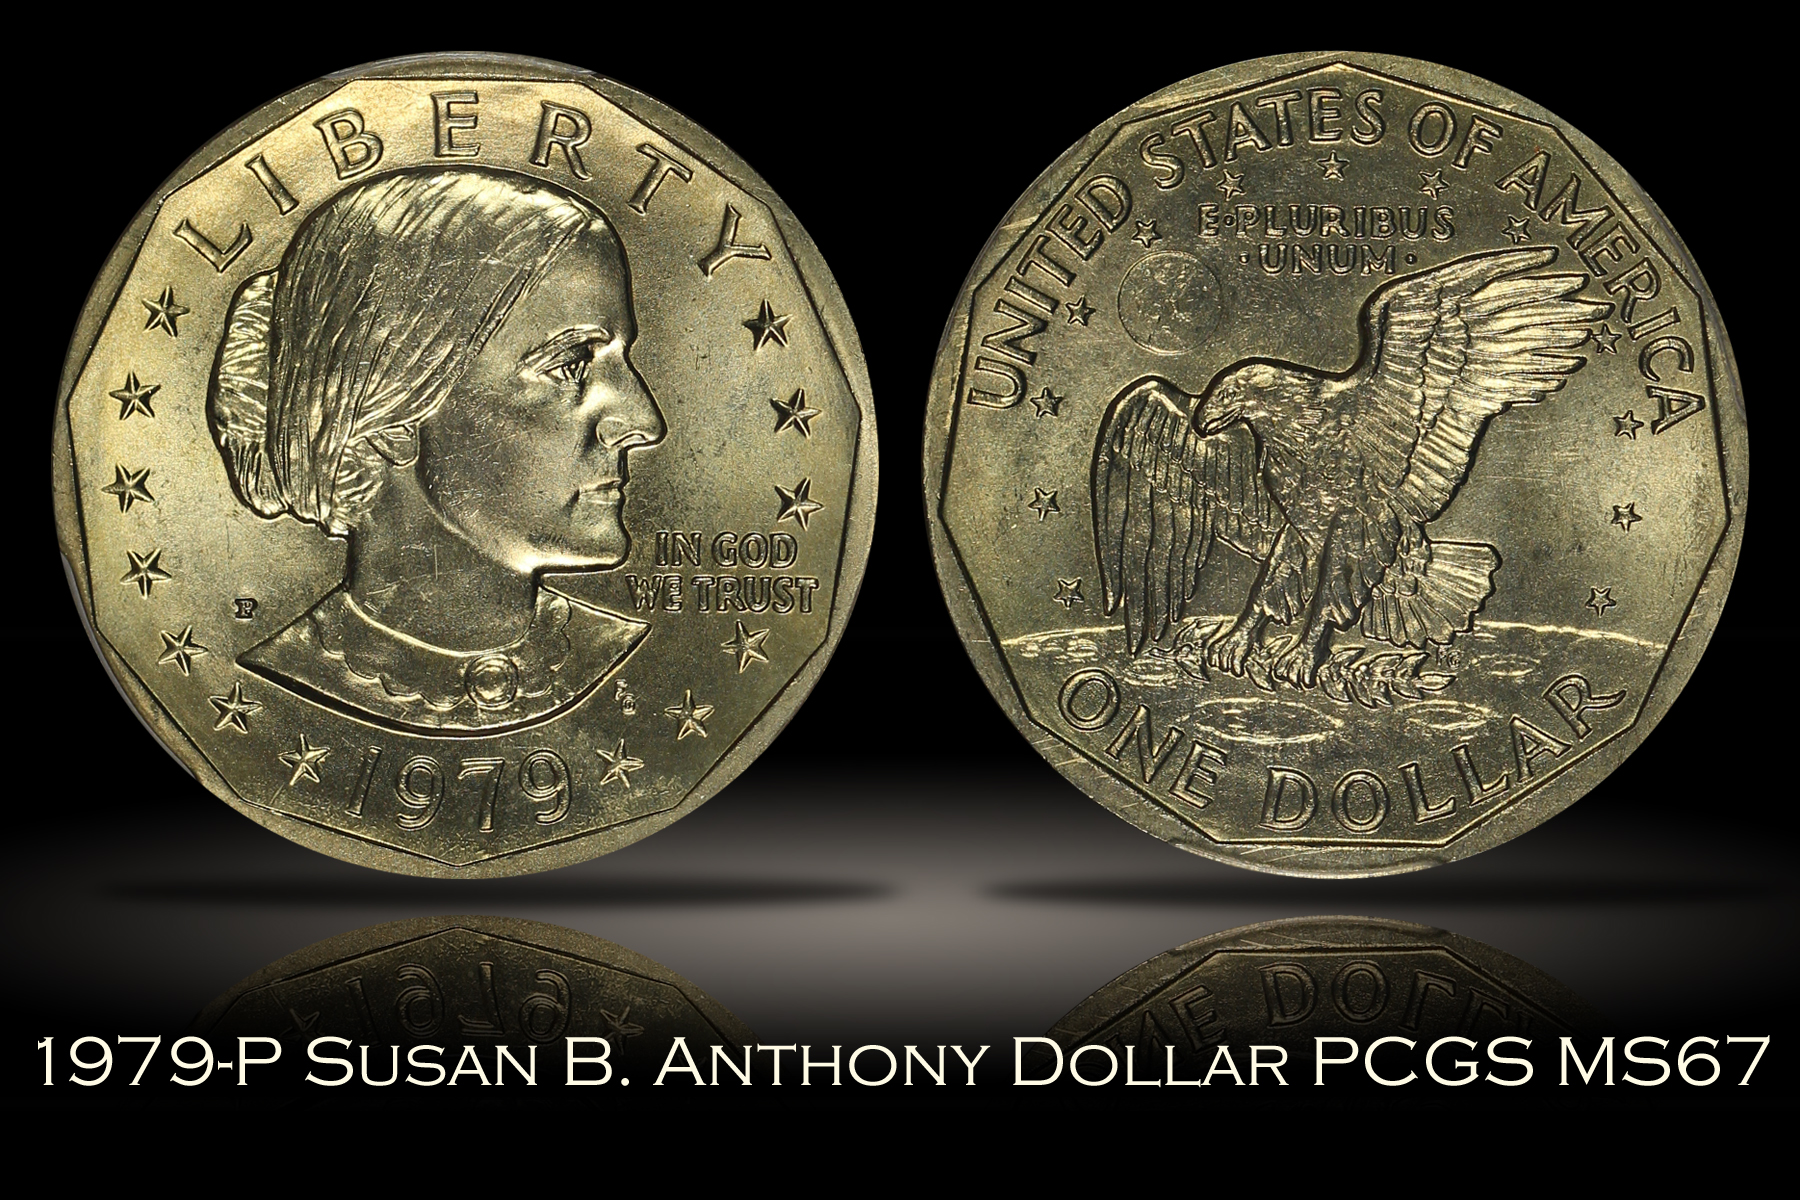 1979-P Susan B. Anthony Dollar PCGS MS67